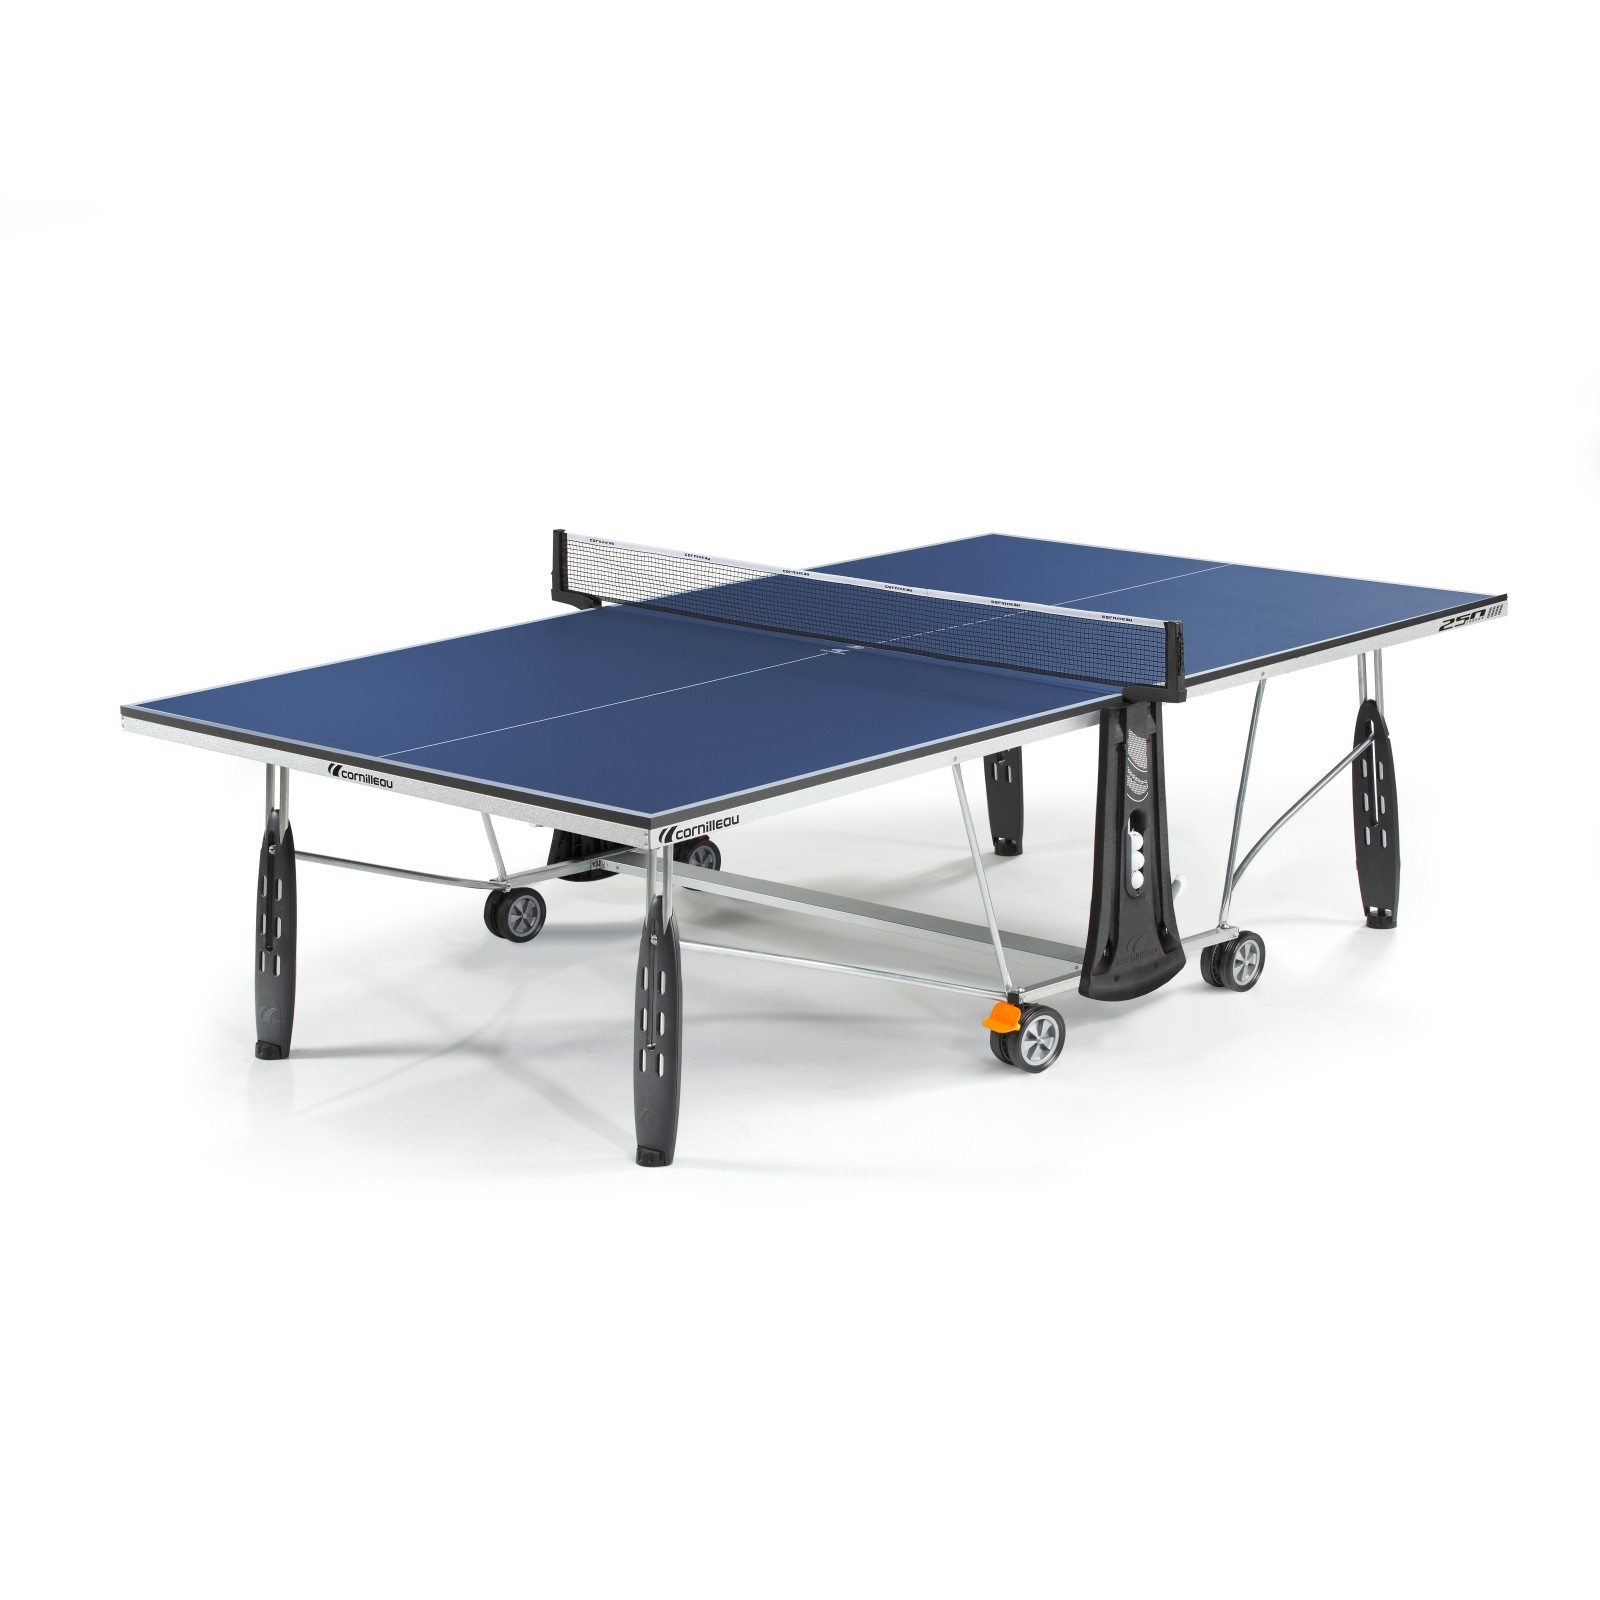 Cornilleau Sport 250 Rollaway Table Tennis Table - Shop ...